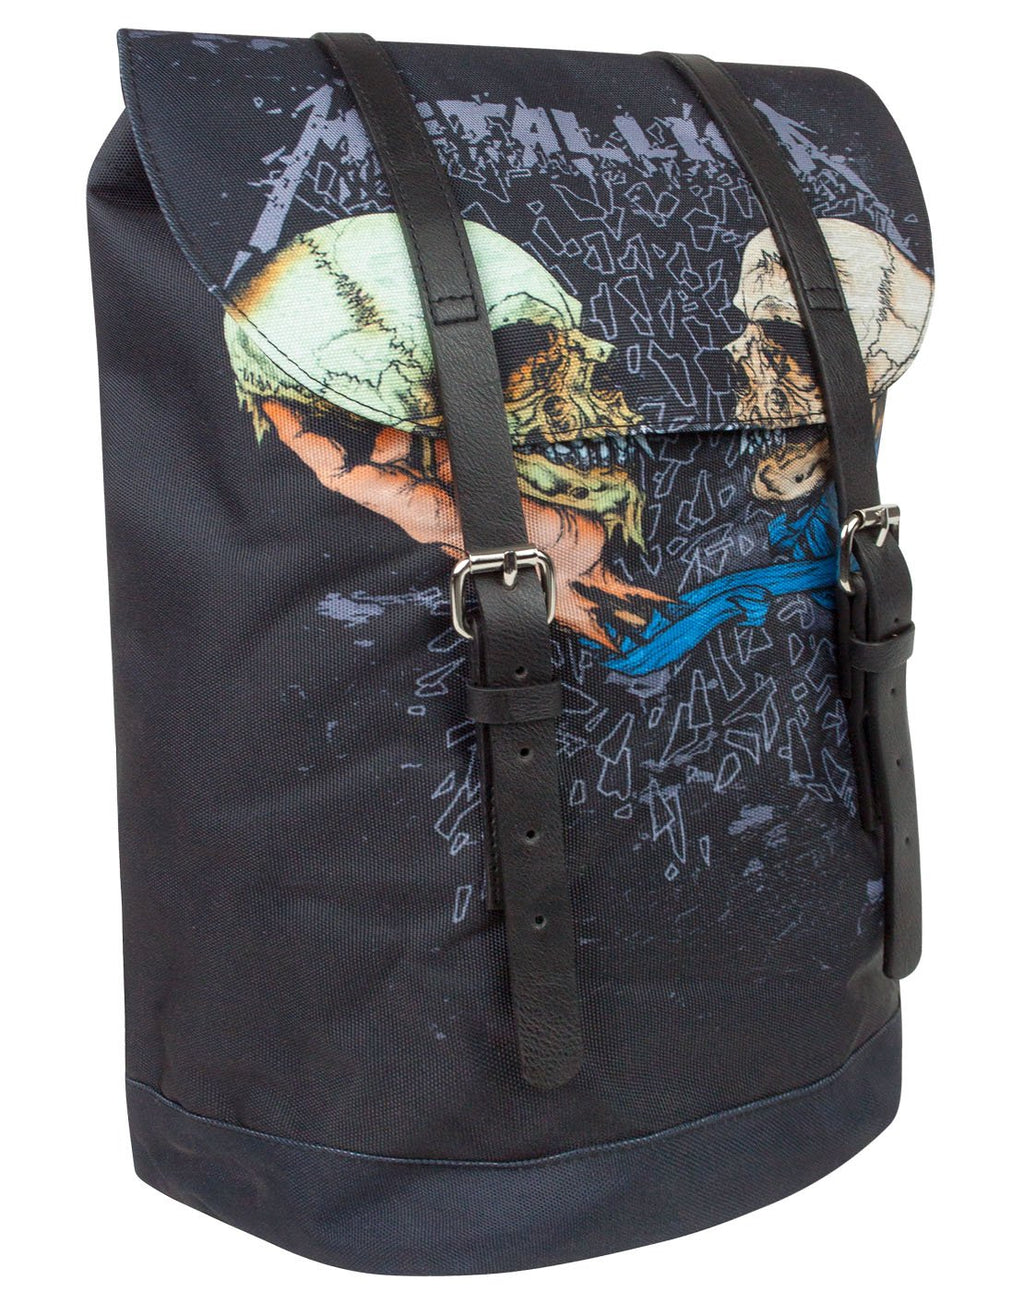 Rock Sax Metallica Sad But True Heritage Backpack